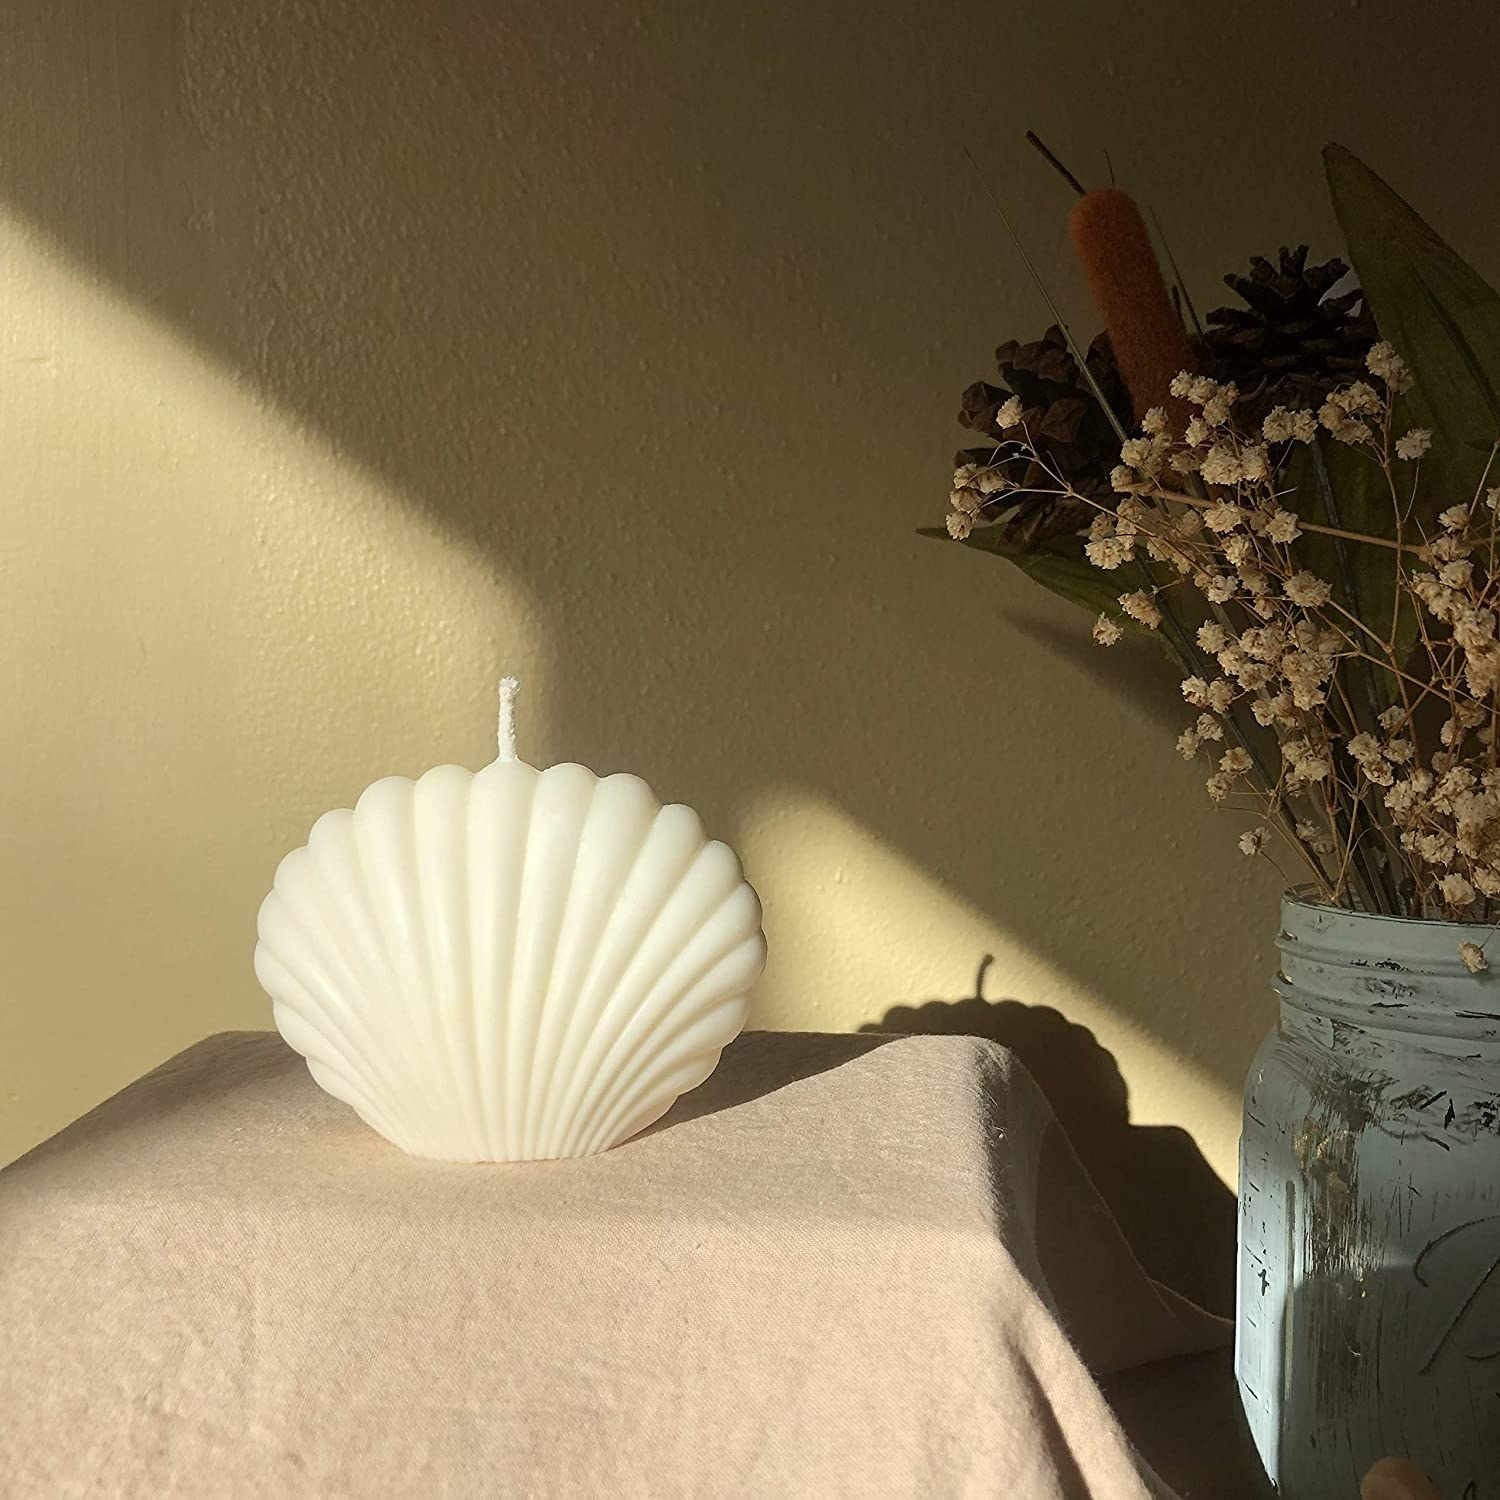 white seashell candle styled next to some flowers in a vase